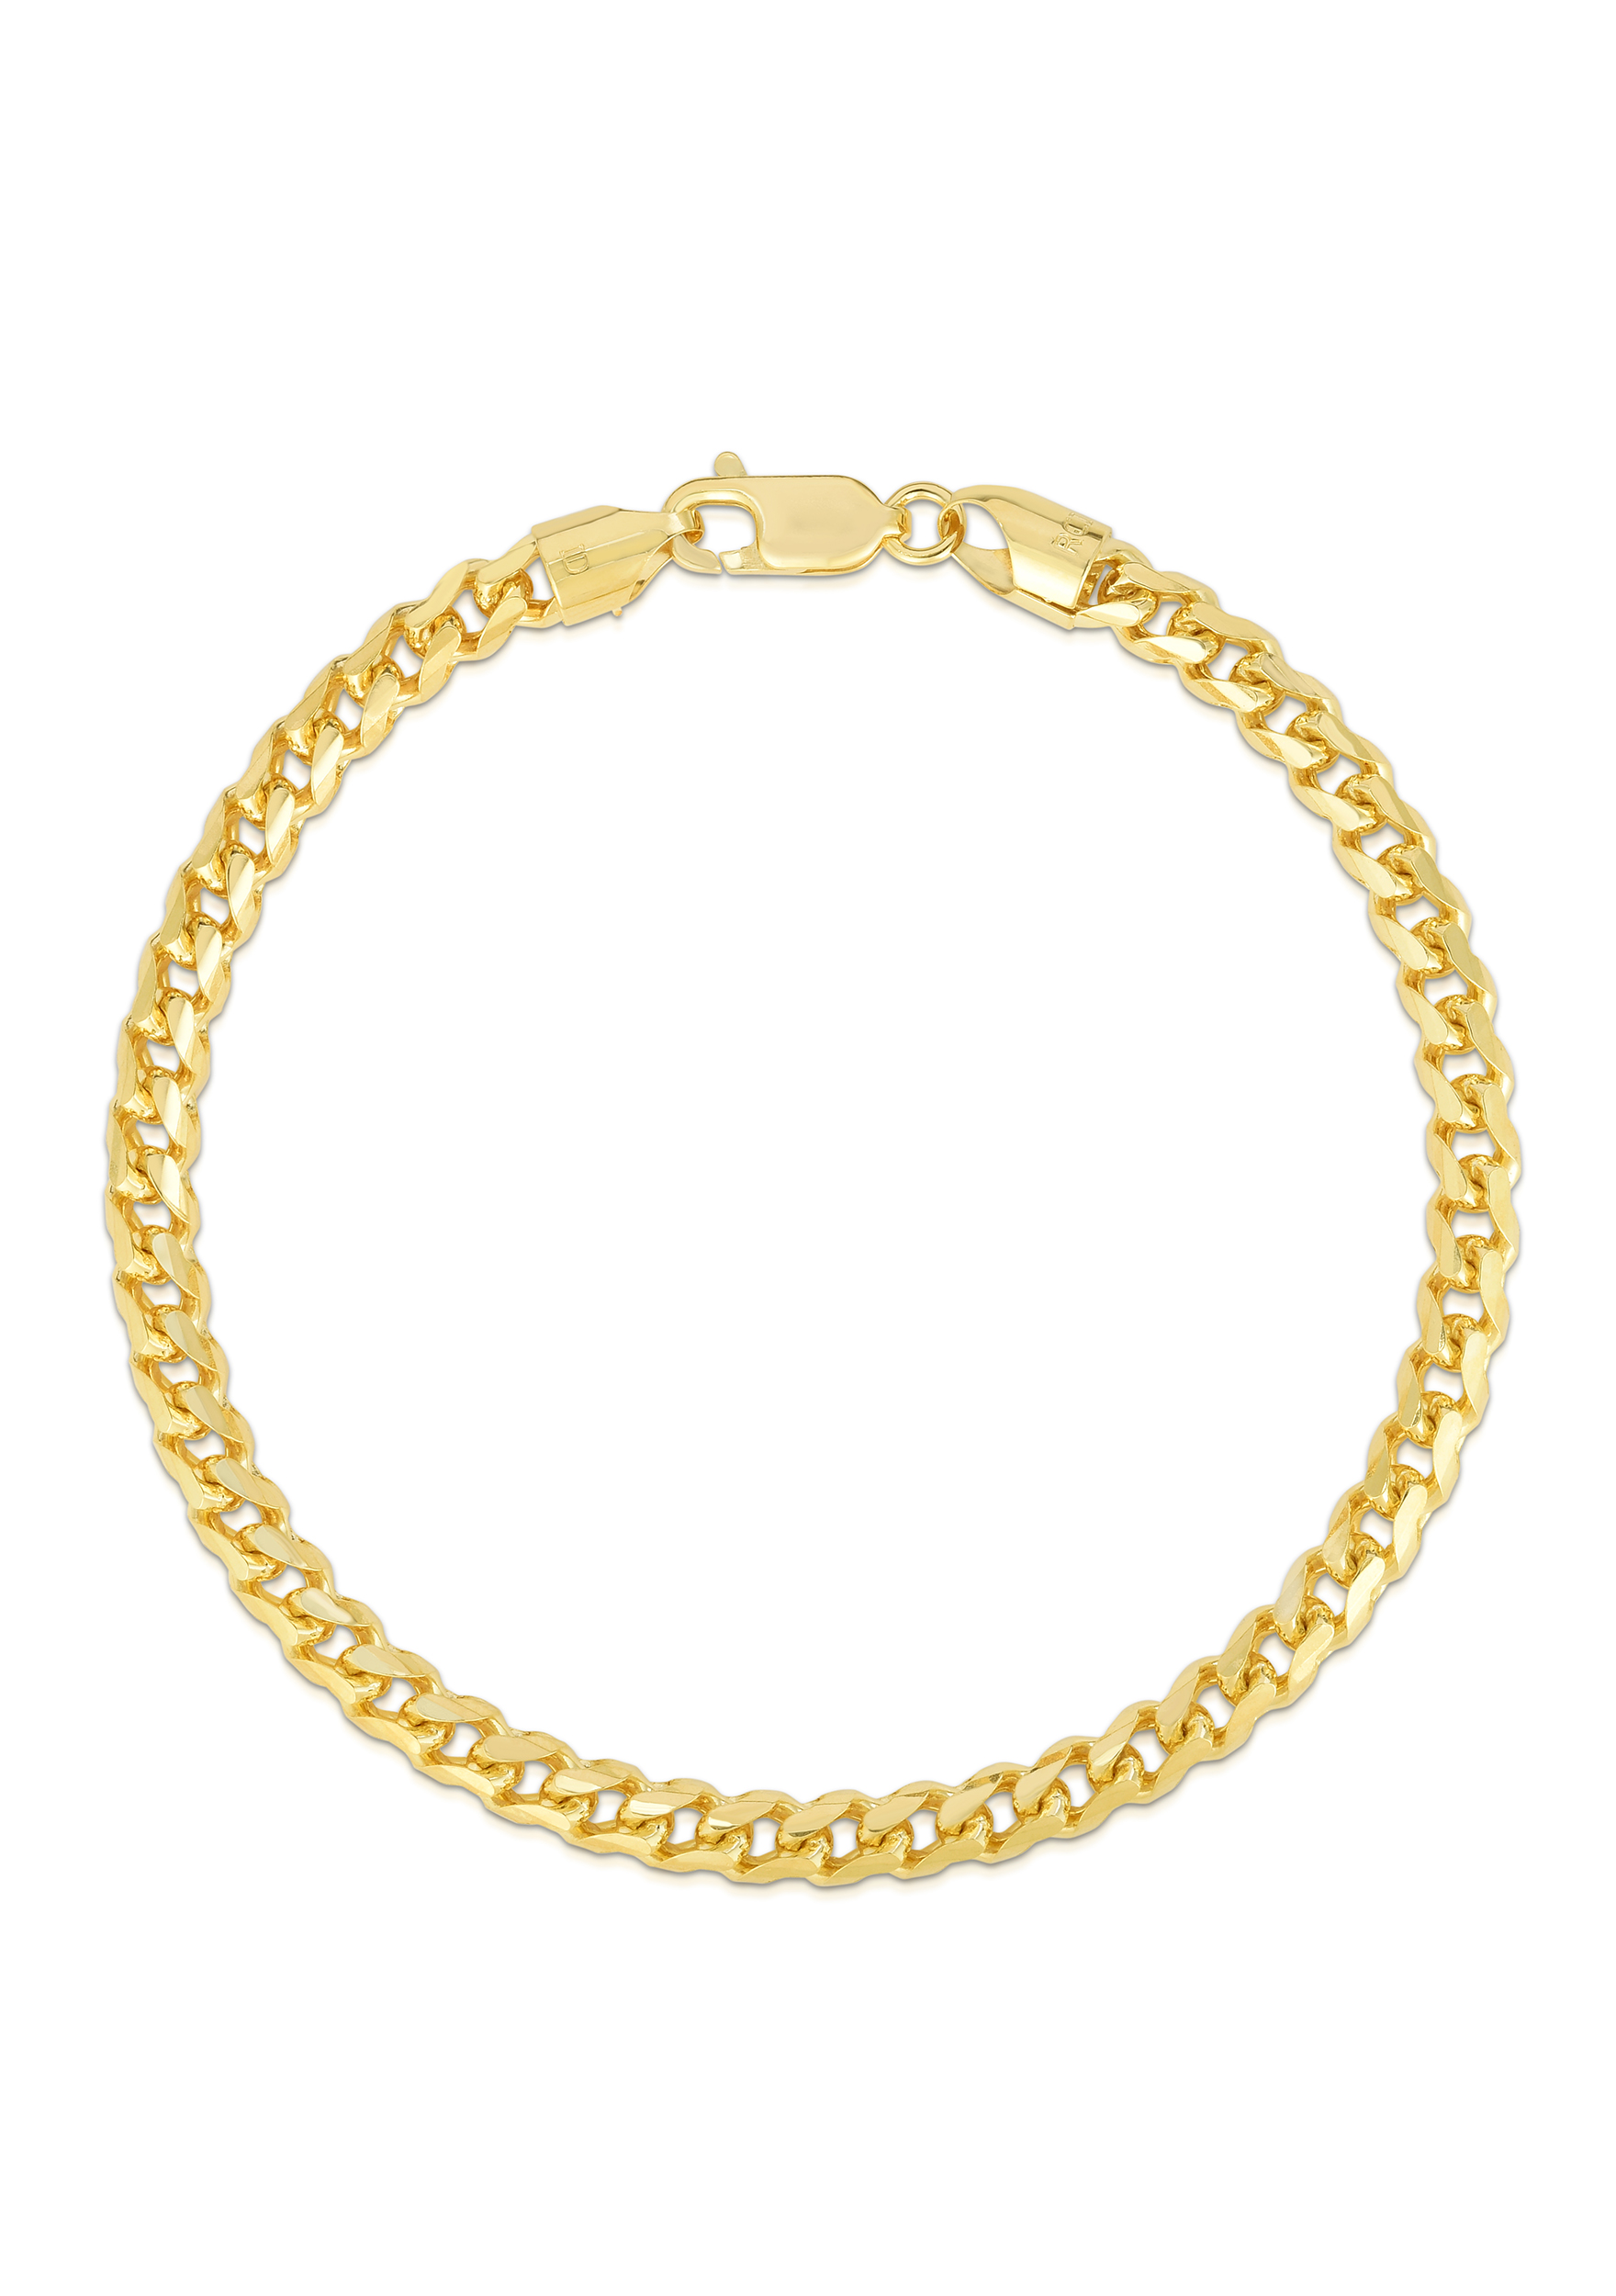 14kt Gold 30 inches Yellow Finish 4mm Shiny Round Franco Chain with Lobster Clasp